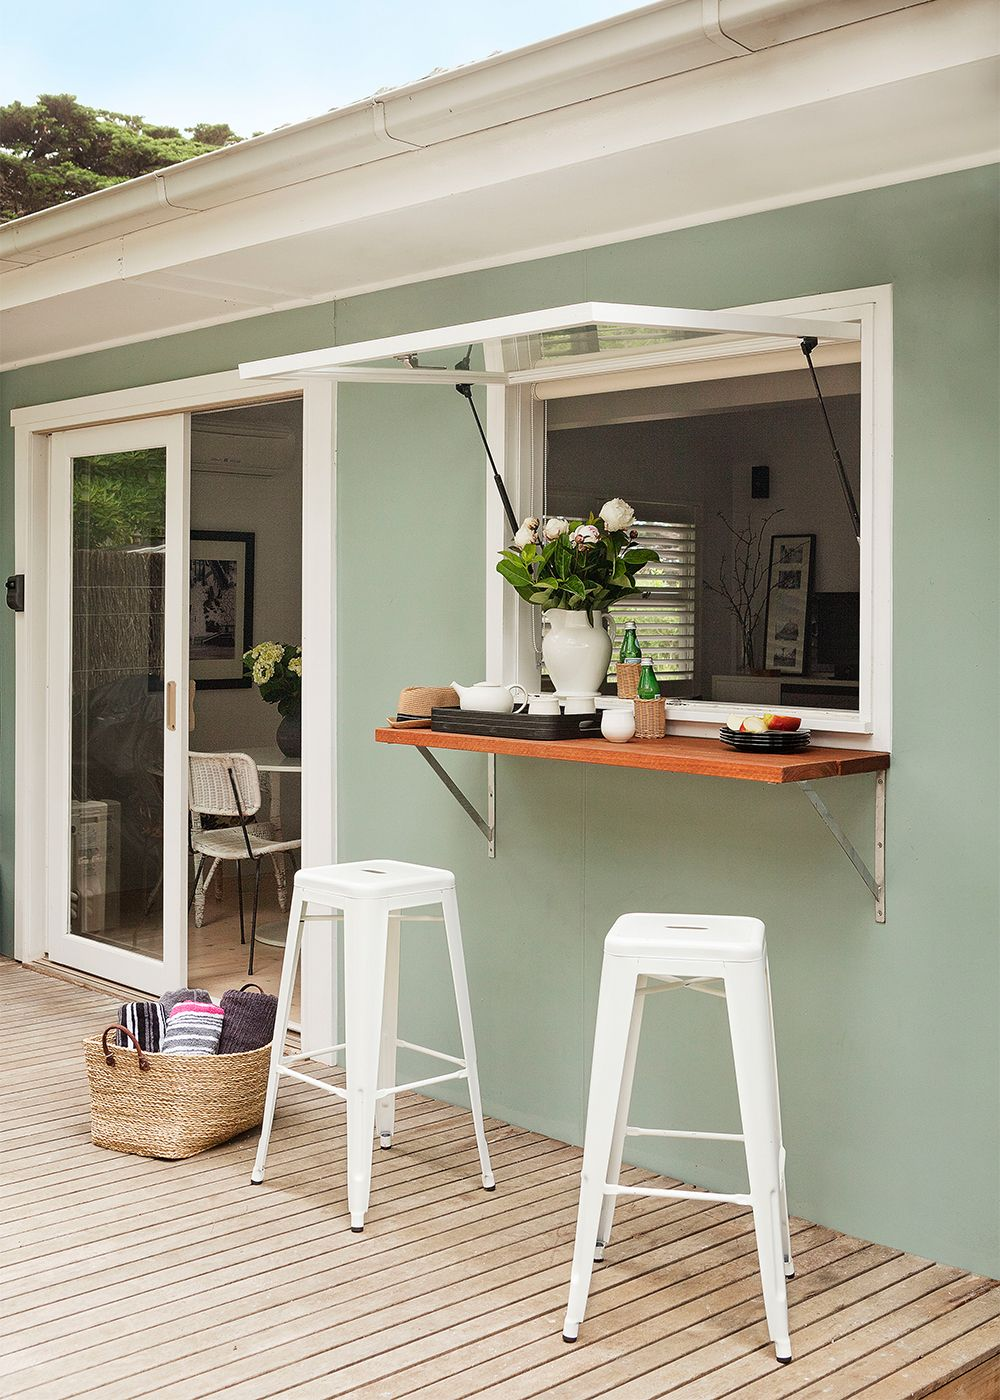 Kitchen servery window ideas  simple shelving and awning window create a clever servery to the